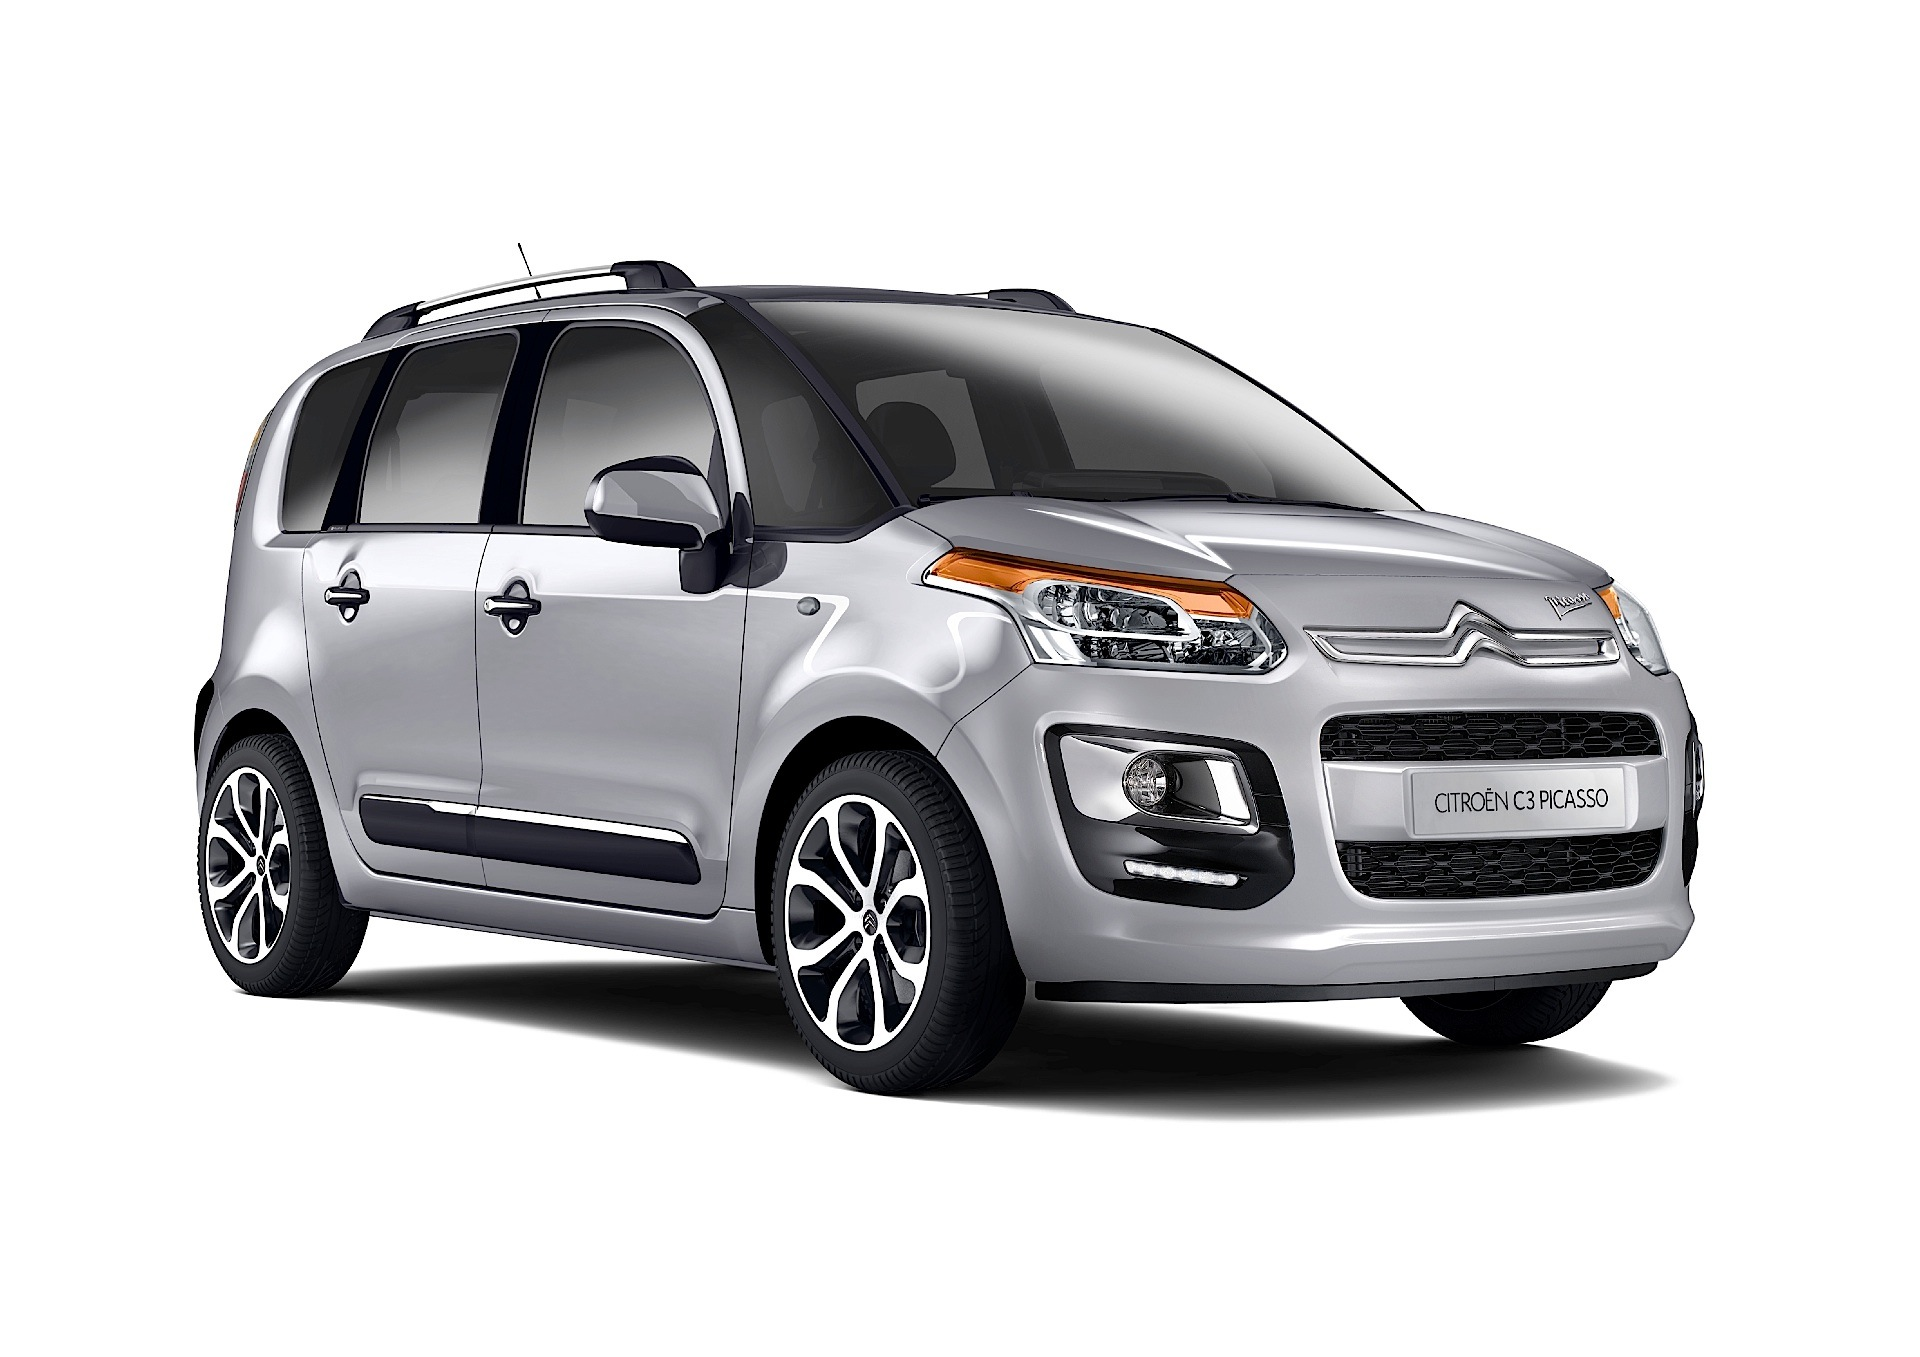 citroen c3 picasso specs photos 2013 2014 2015 2016 2017 2018 autoevolution. Black Bedroom Furniture Sets. Home Design Ideas